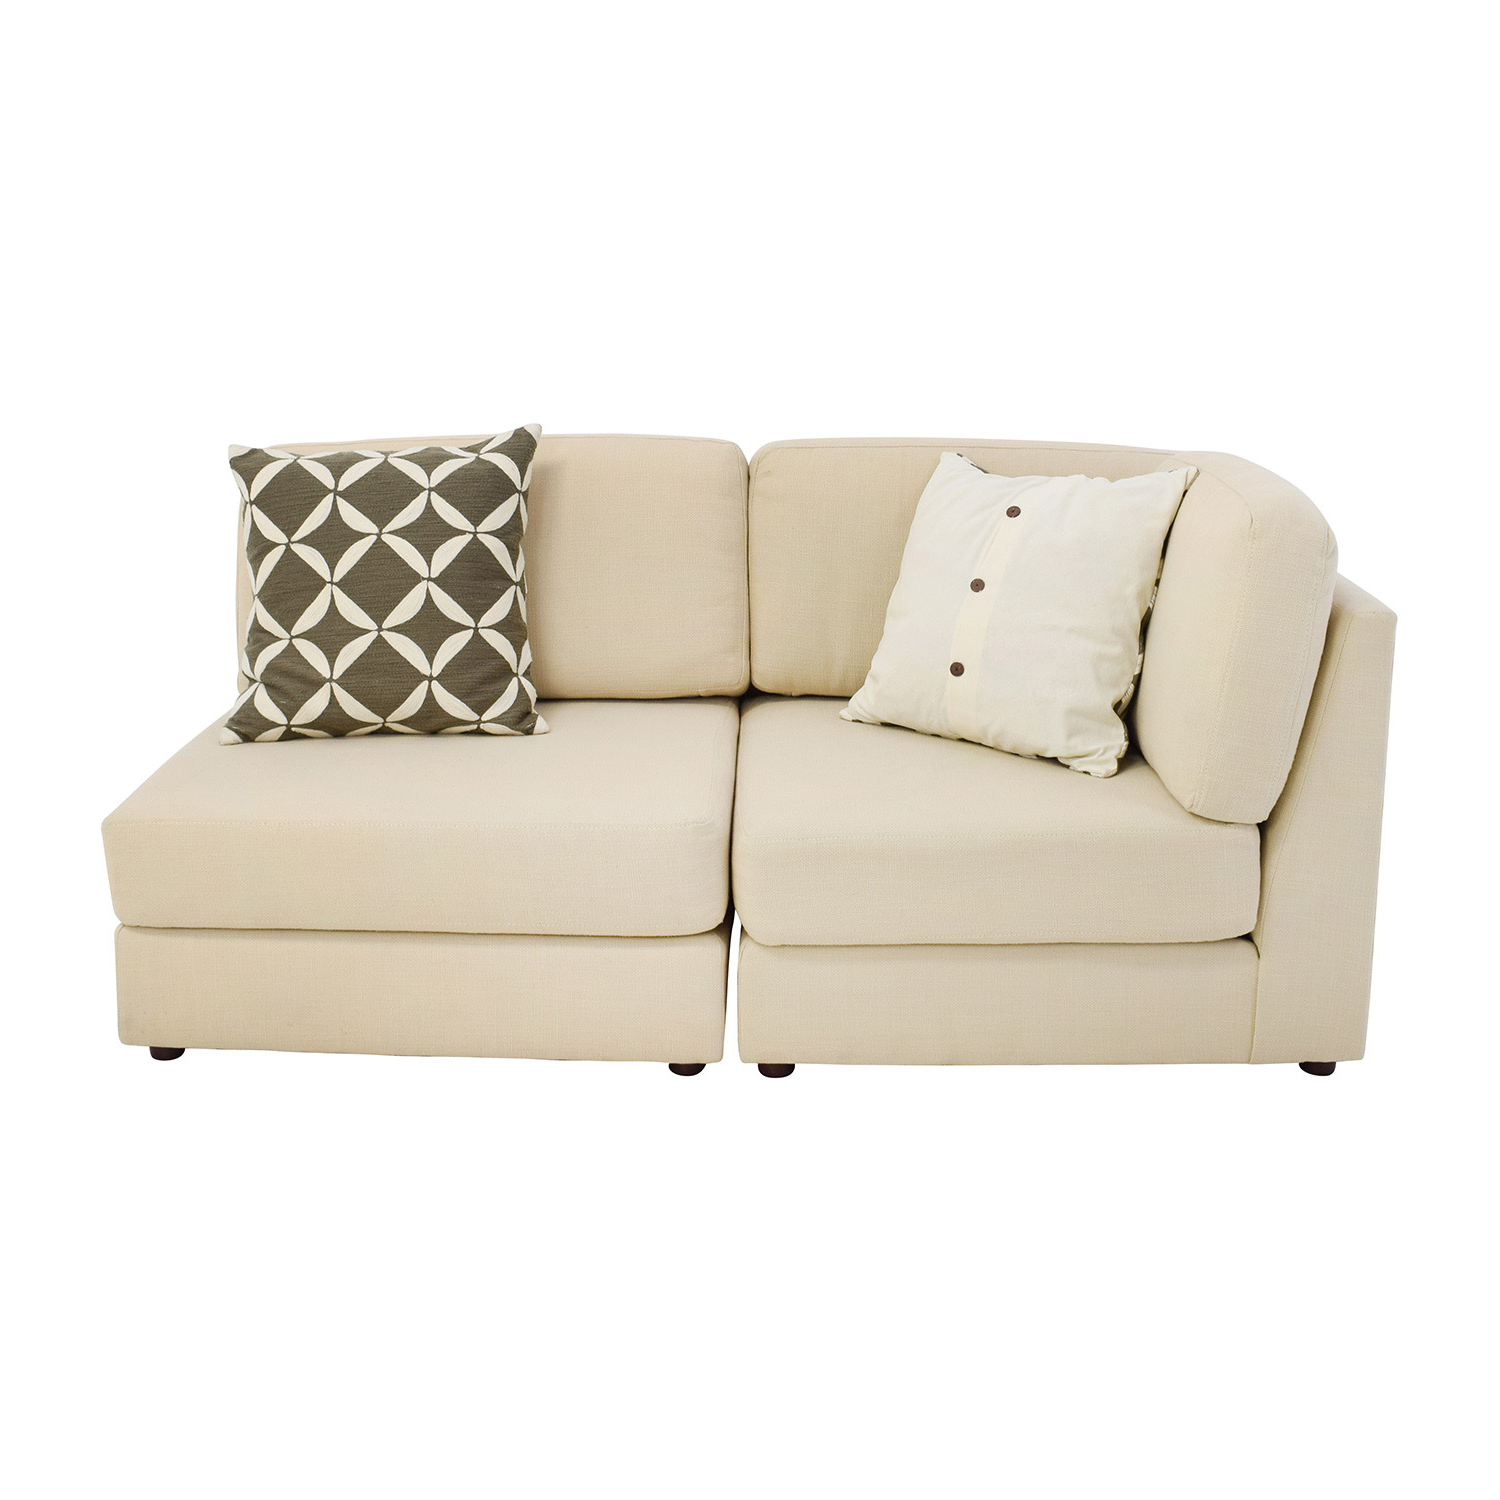 [%76% Off – West Elm West Elm Cream Chaise Sofa Or Two Chairs / Sofas Intended For Well Known Elm Sofa Chairs|elm Sofa Chairs Inside Most Up To Date 76% Off – West Elm West Elm Cream Chaise Sofa Or Two Chairs / Sofas|most Up To Date Elm Sofa Chairs Intended For 76% Off – West Elm West Elm Cream Chaise Sofa Or Two Chairs / Sofas|most Recently Released 76% Off – West Elm West Elm Cream Chaise Sofa Or Two Chairs / Sofas Pertaining To Elm Sofa Chairs%] (View 5 of 20)